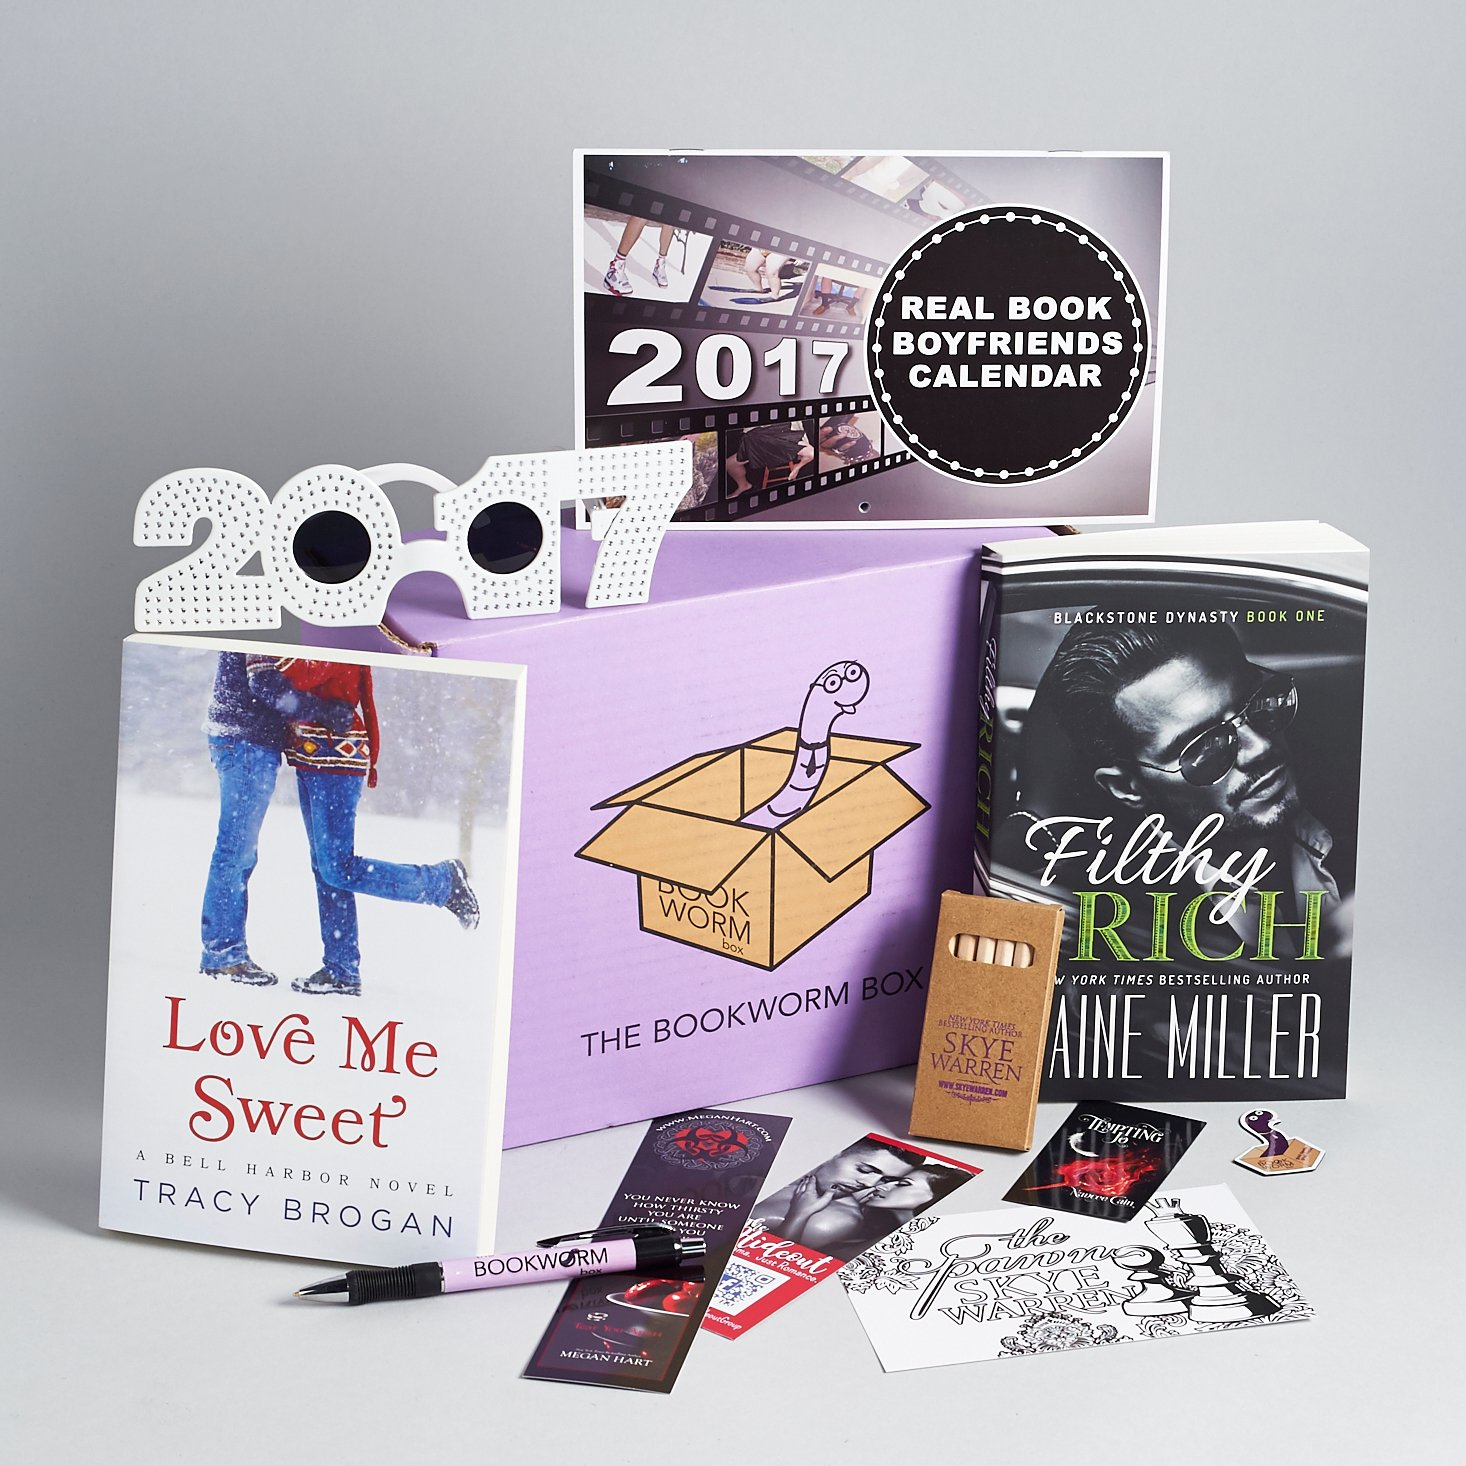 Read our review of the December 2016 Bookworm Box!